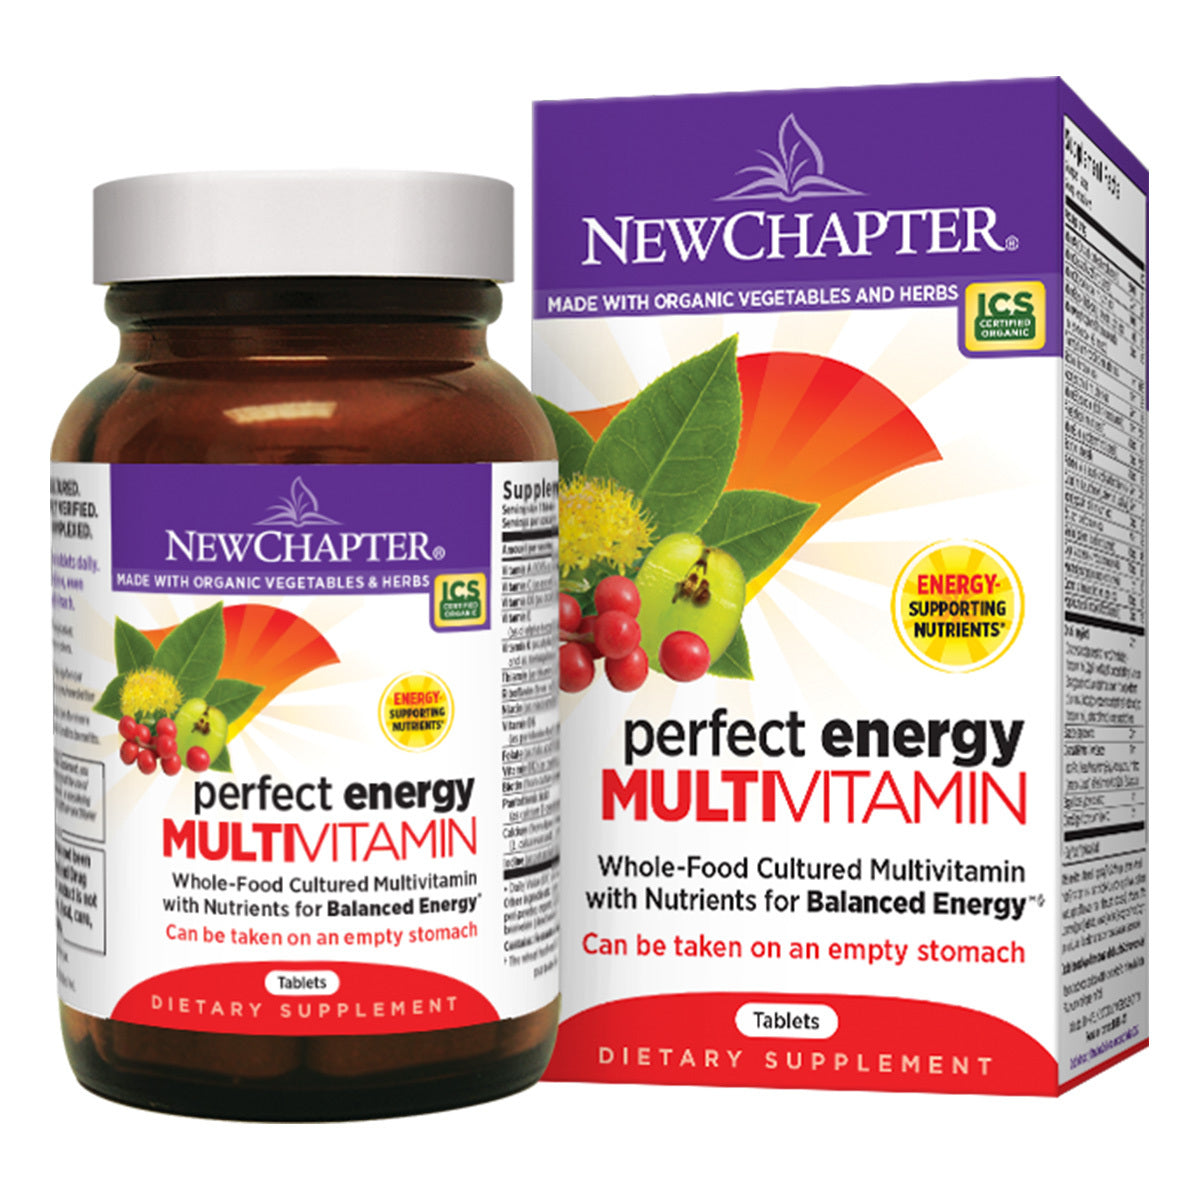 A bottle of New Chapter Perfect Energy Multivitamin tablets